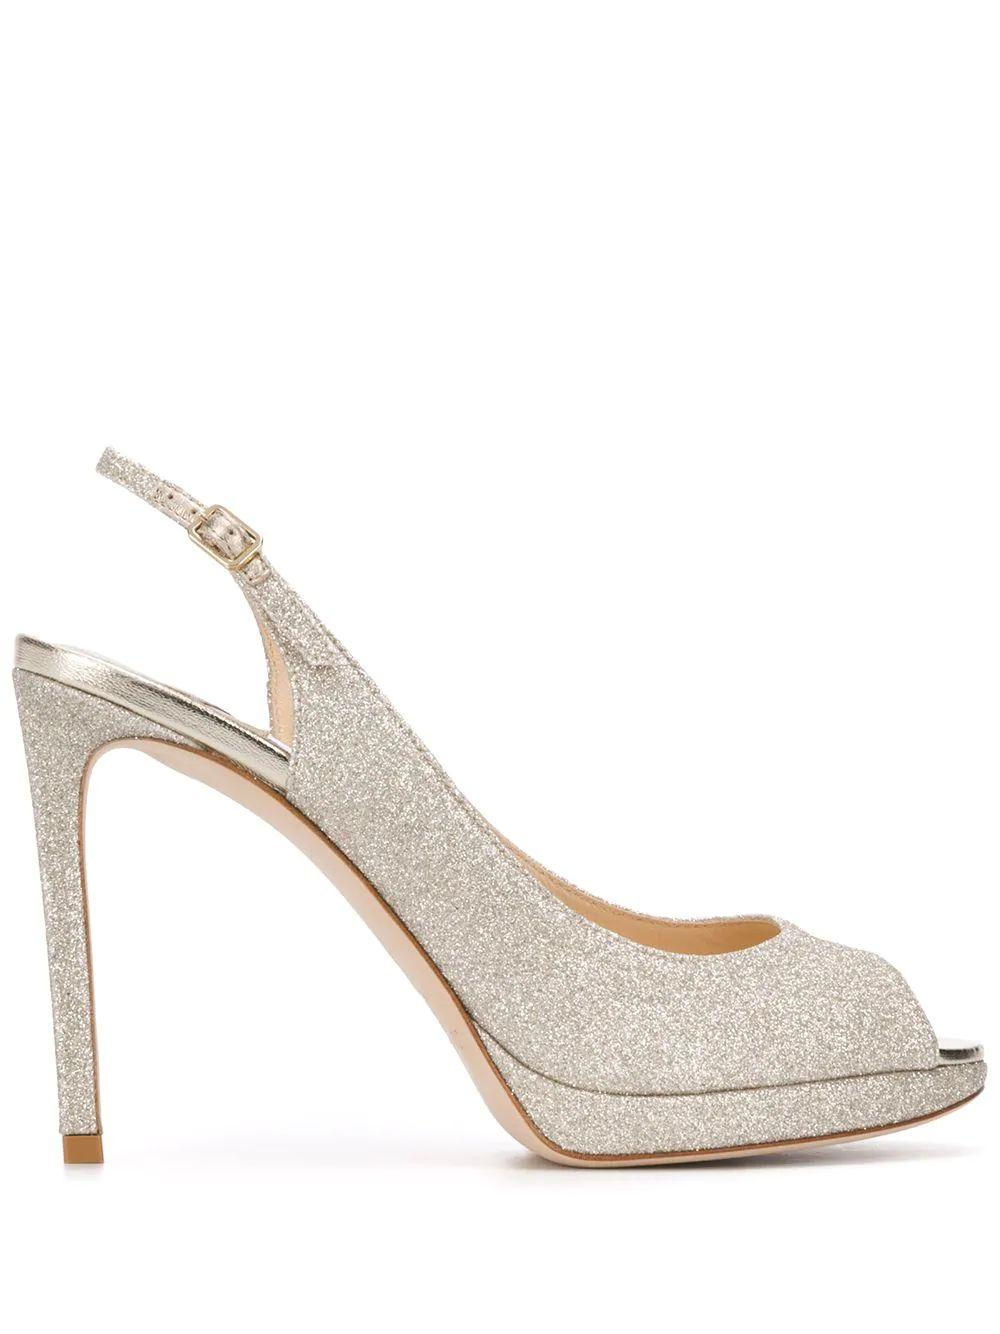 Dusty Glitter 100mm Sling Back Peeptoe